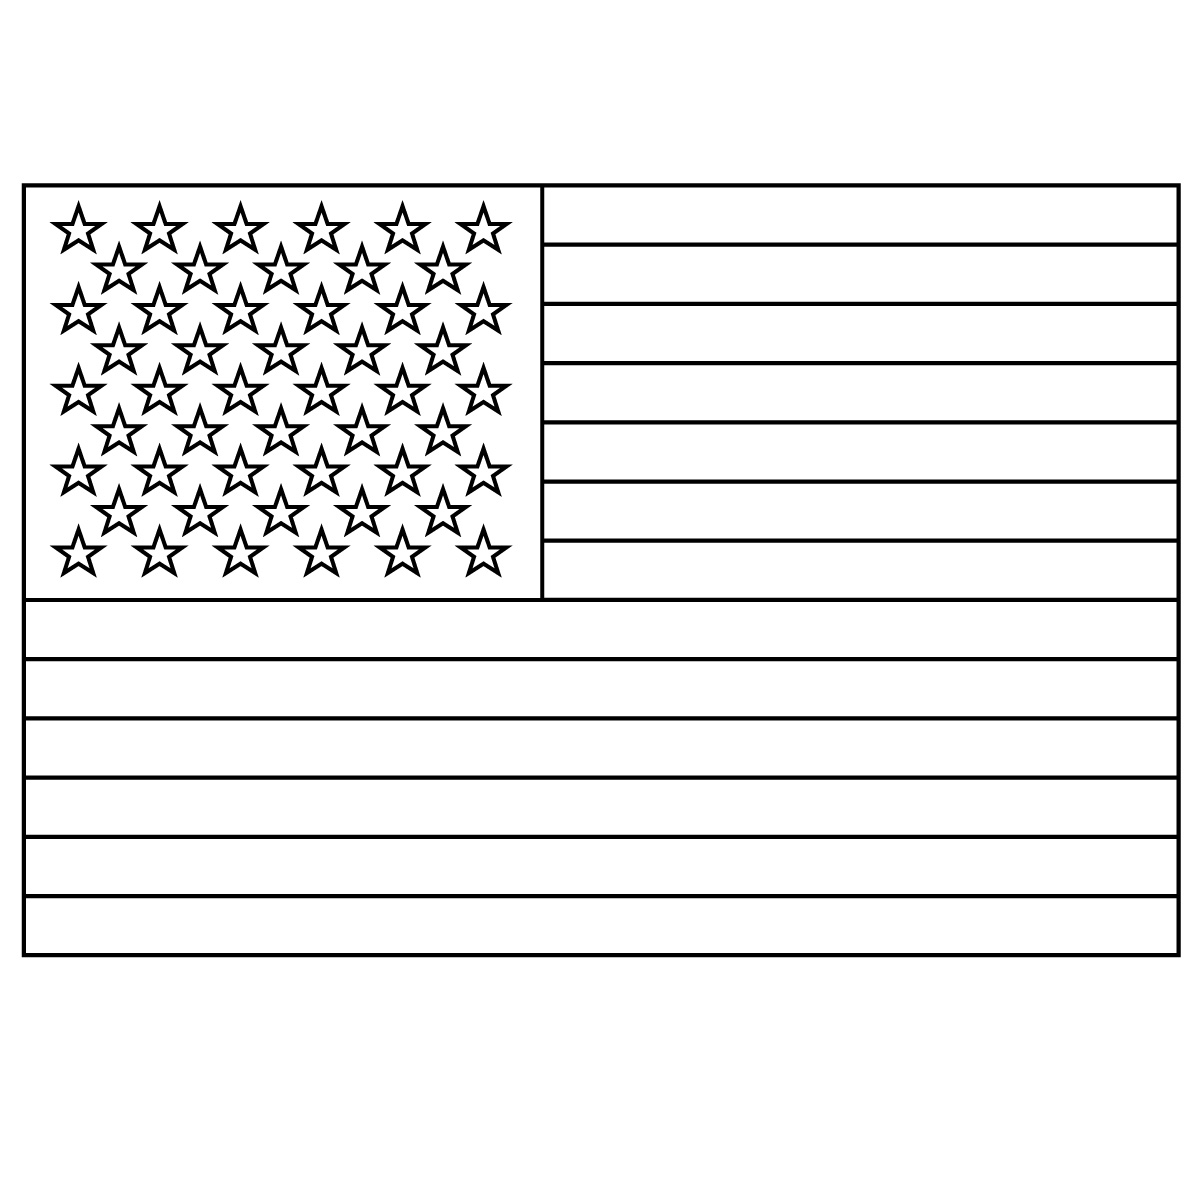 5 best images of american flag star template printable for Small star template printable free